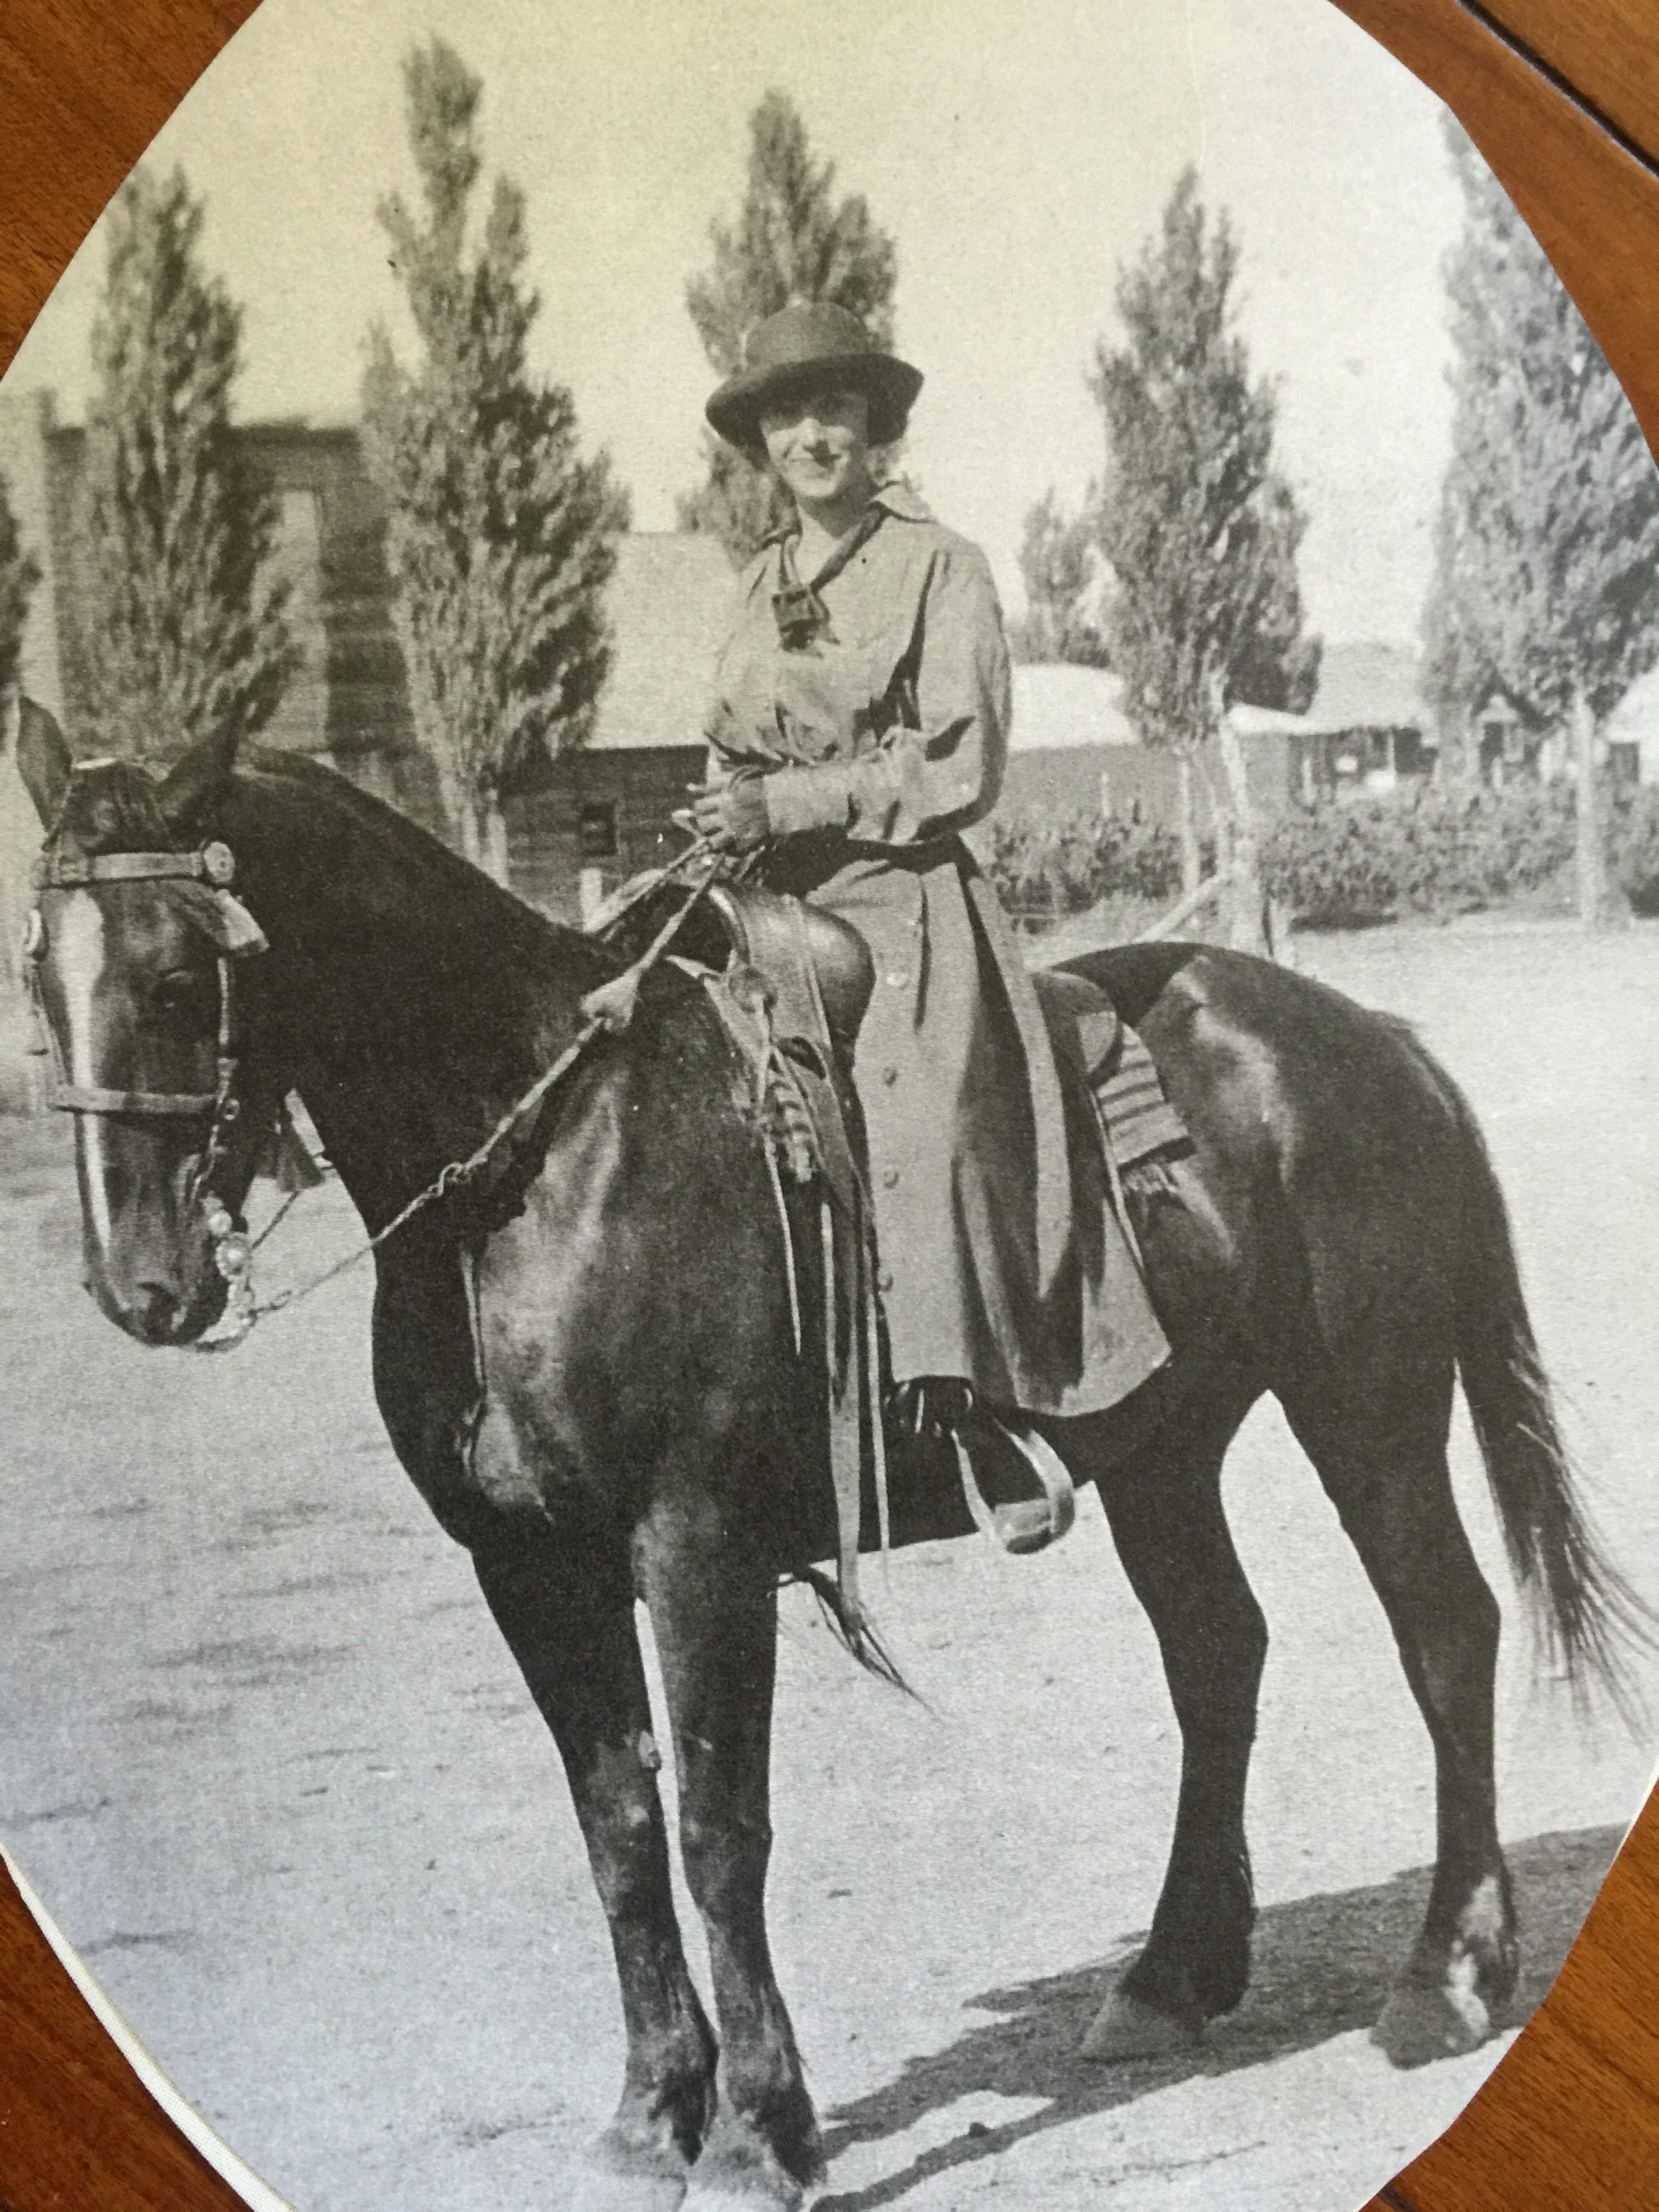 Beulah Price Staheli, Enterprise Rodeo Queen 1920. Staheli's great granddaughter Cierra Christian carries on her legacy as Rodeo Queen 2016. Enterprise, Utah, 1920 | Photo courtesy of Neica Christensen, St. George News